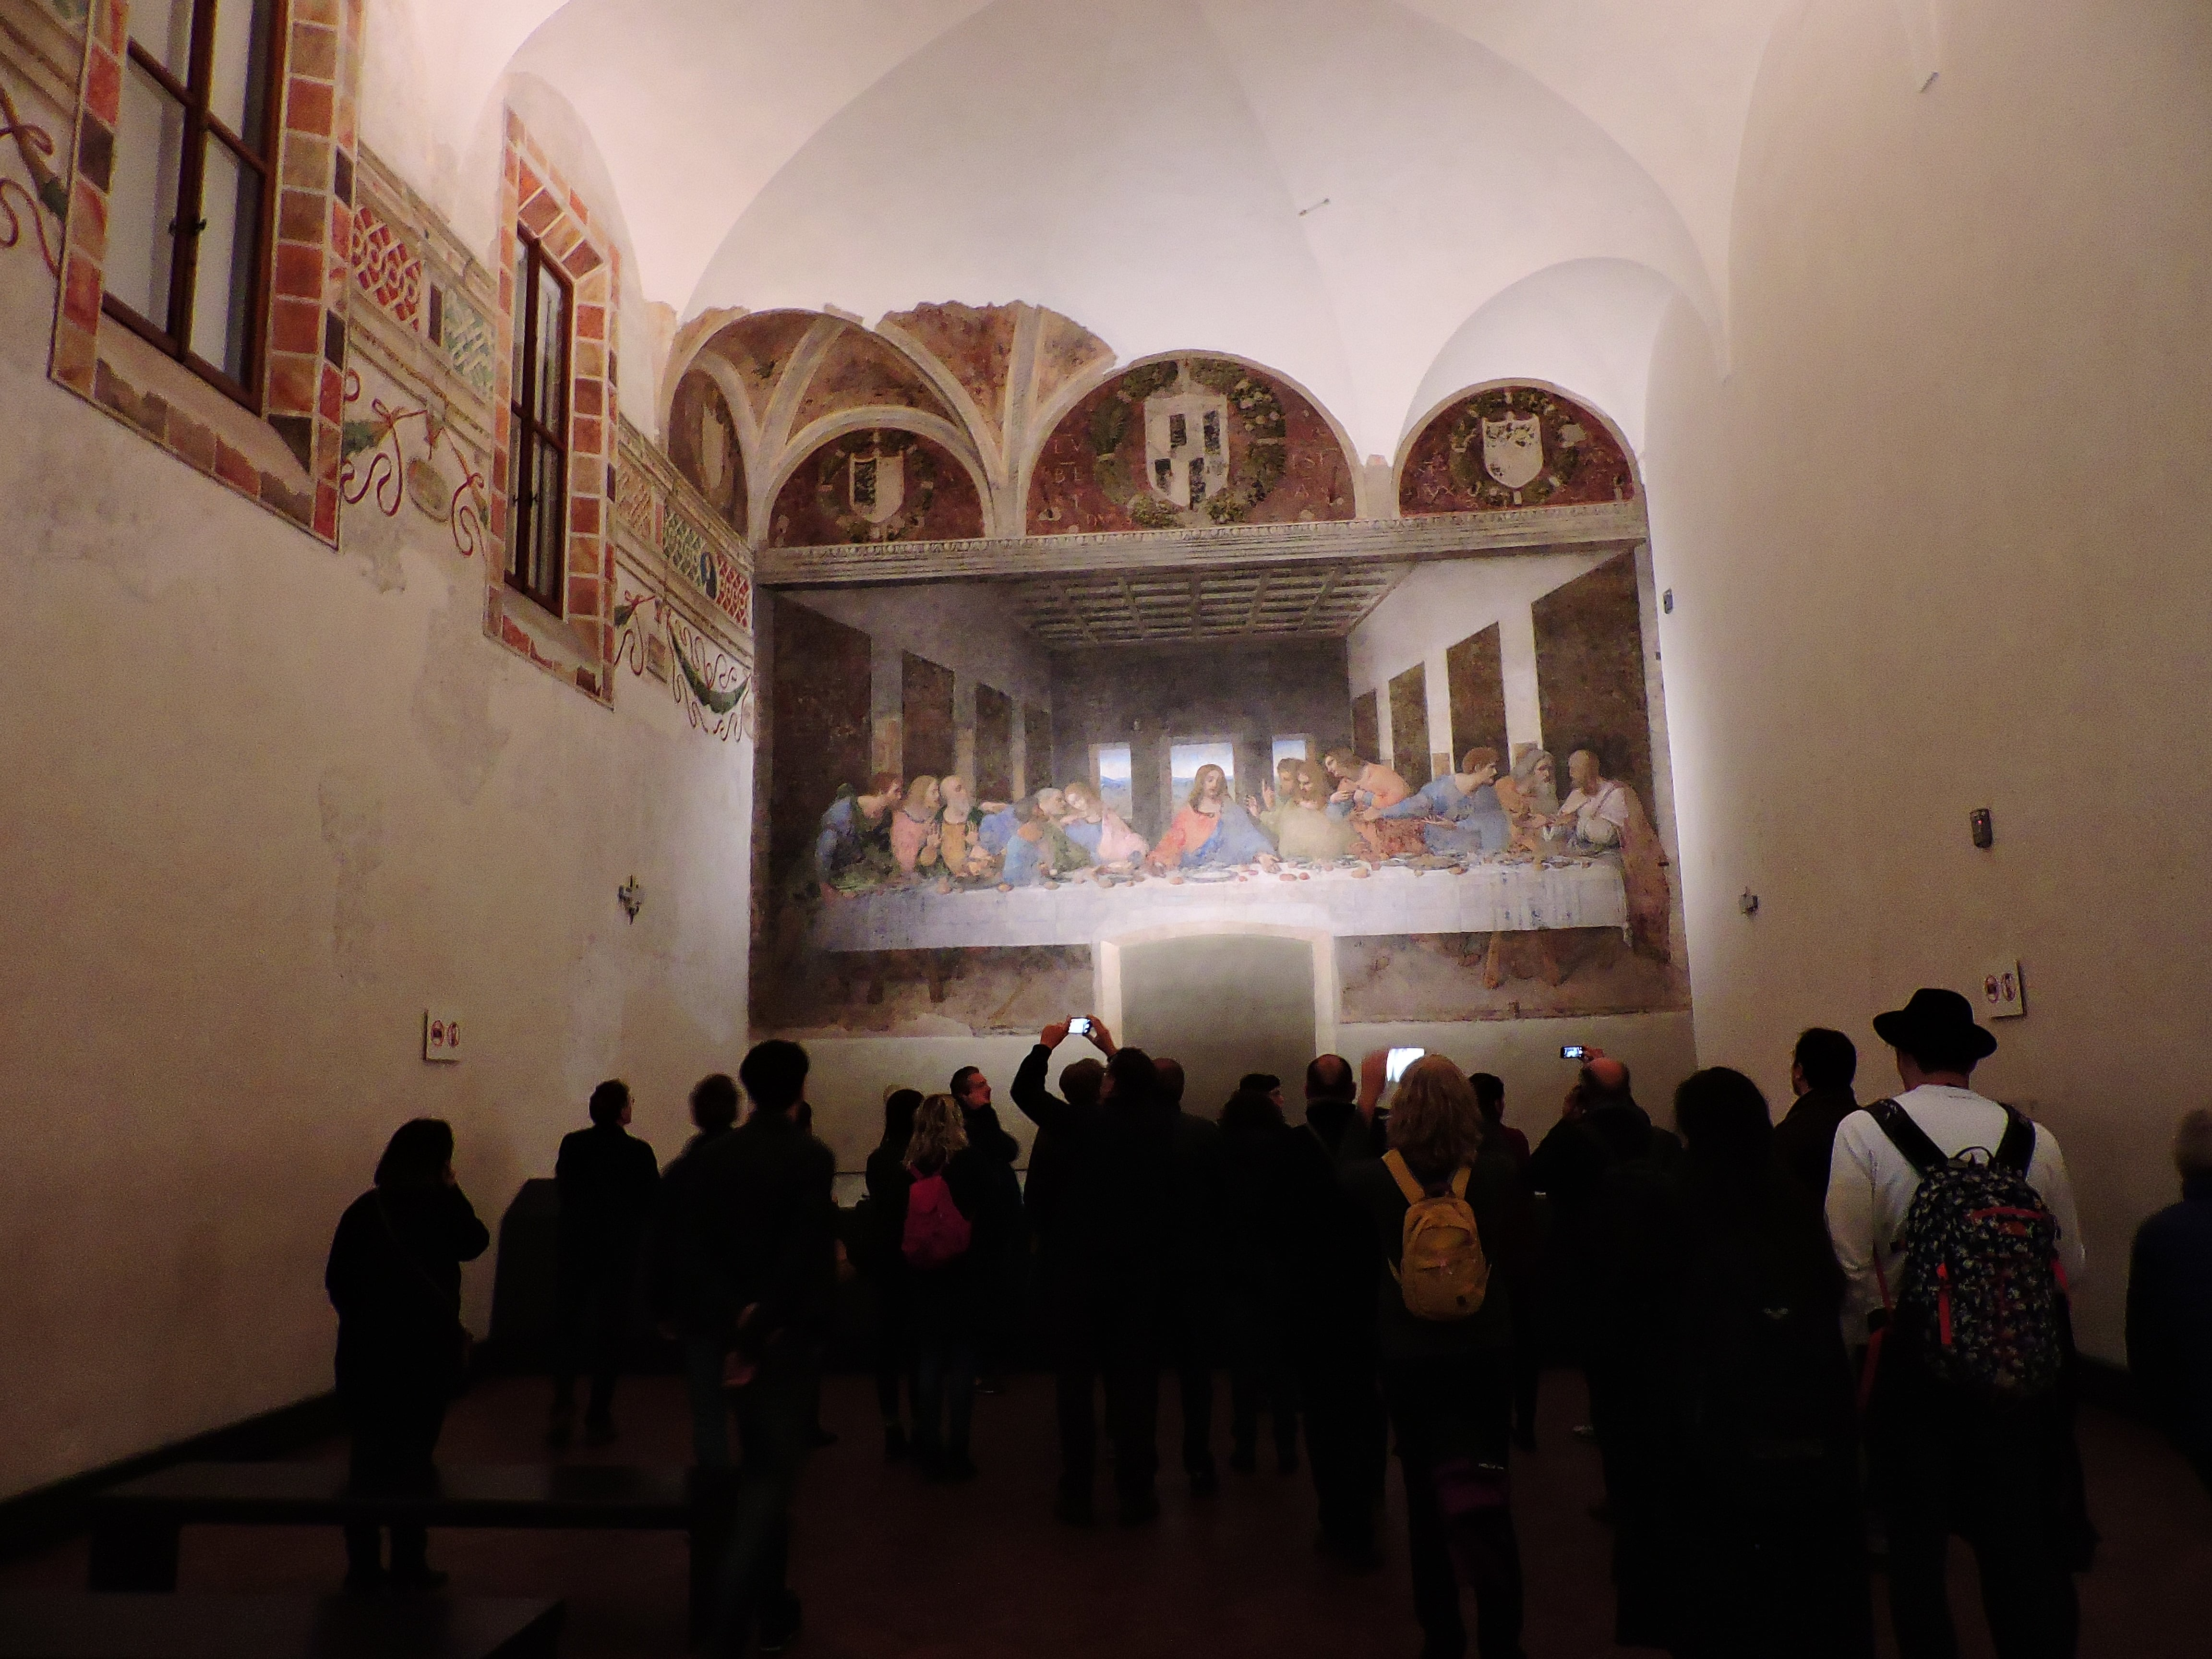 Seeing the famous Last Supper painting in Milan is a cool thing to do in Italy